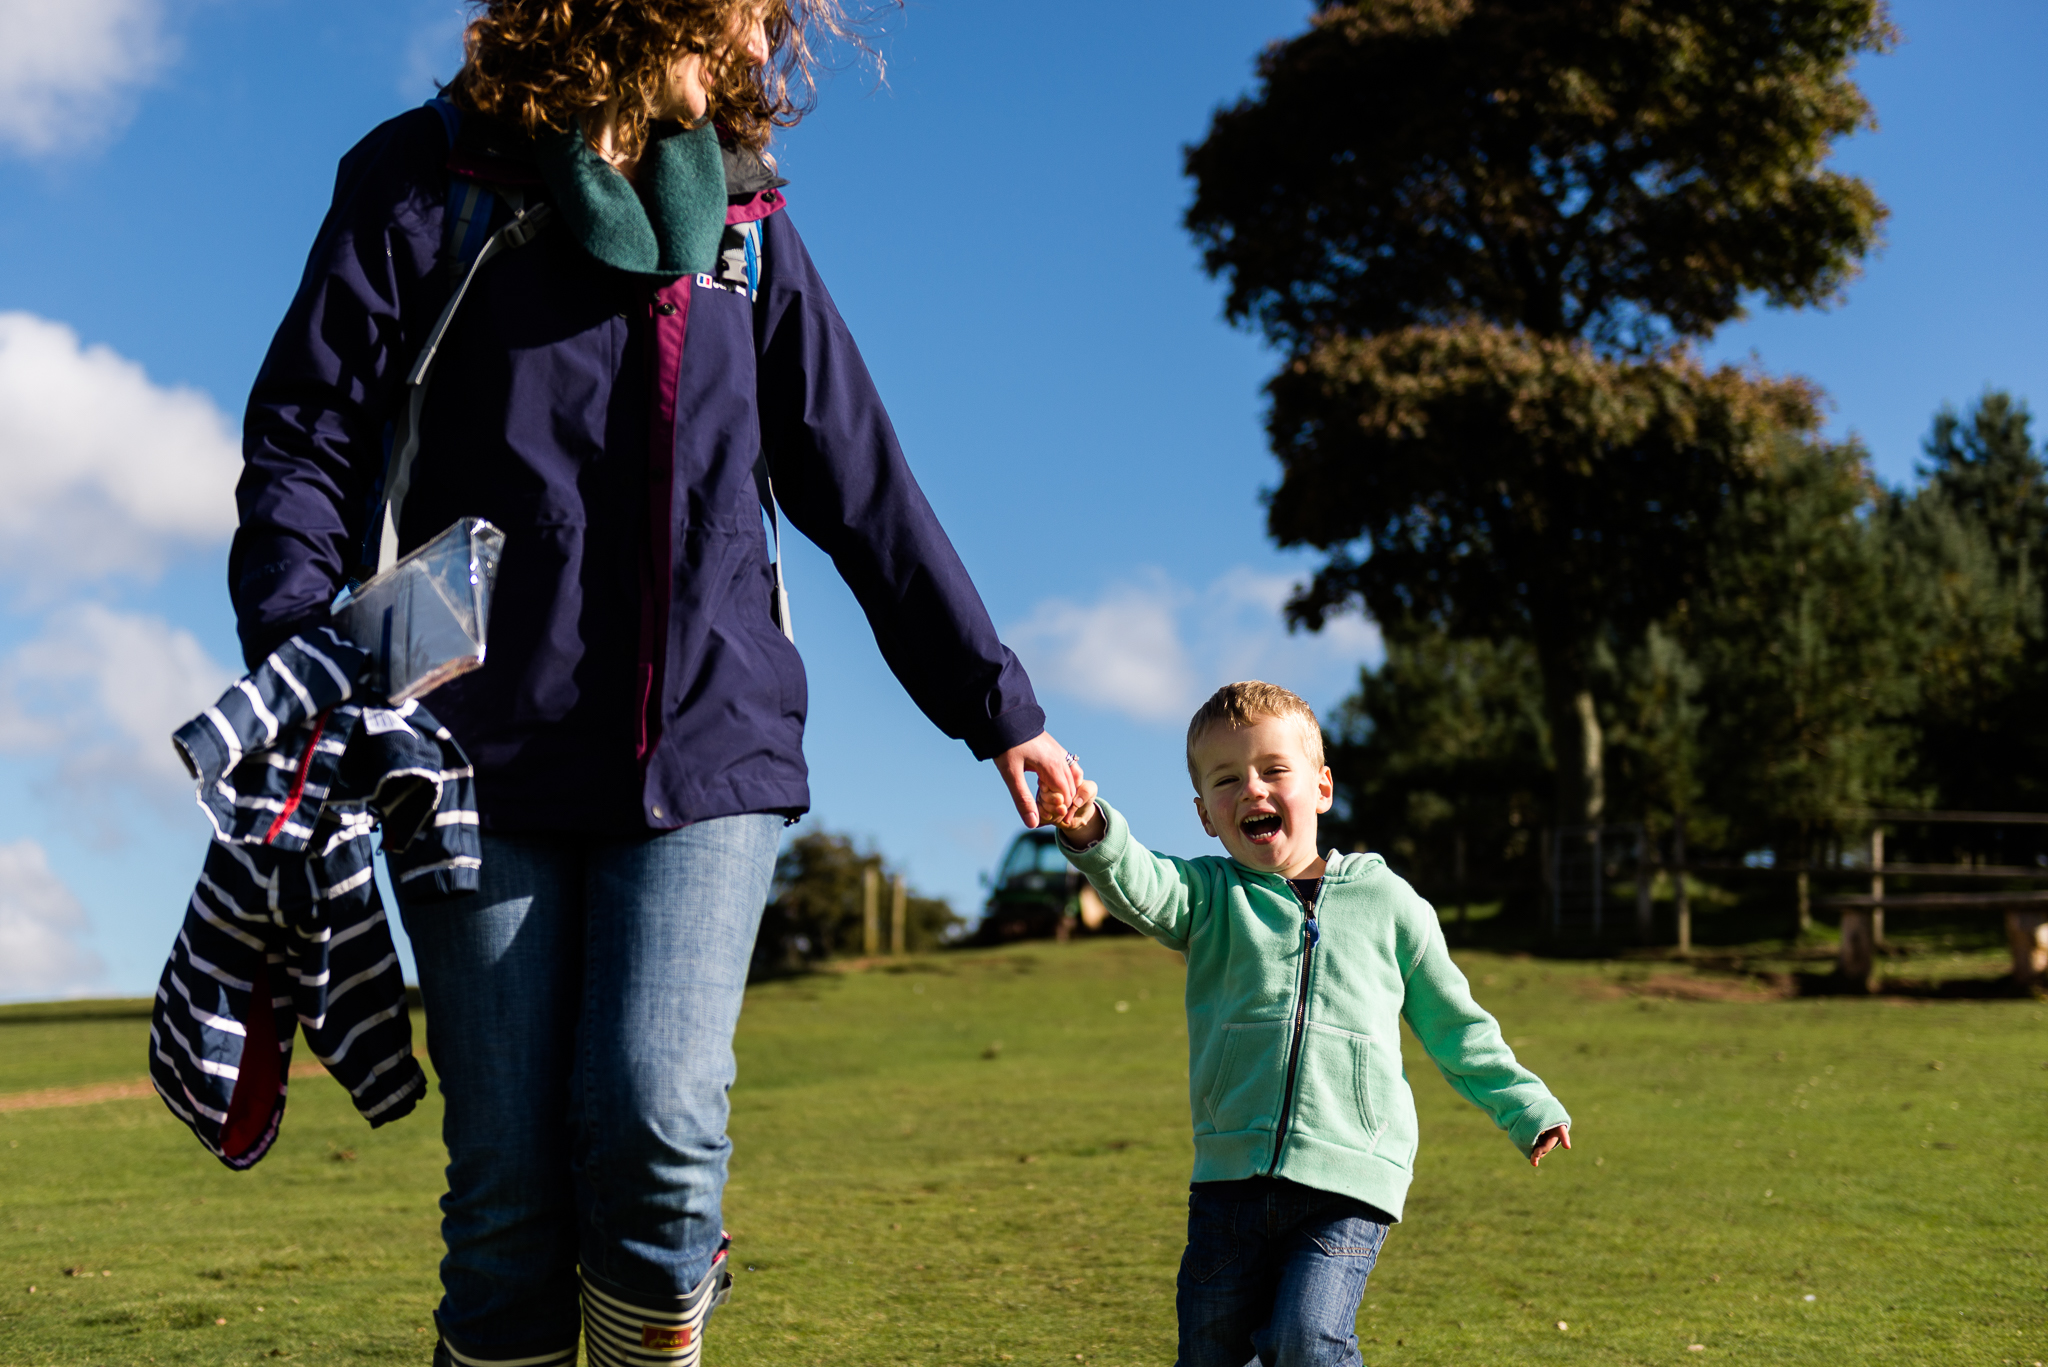 Documentary Family Photography at Clent Hills, Worcestershire Family Lifestyle Photography Woods Outdoors Trees Flying Kite - Jenny Harper-13.jpg